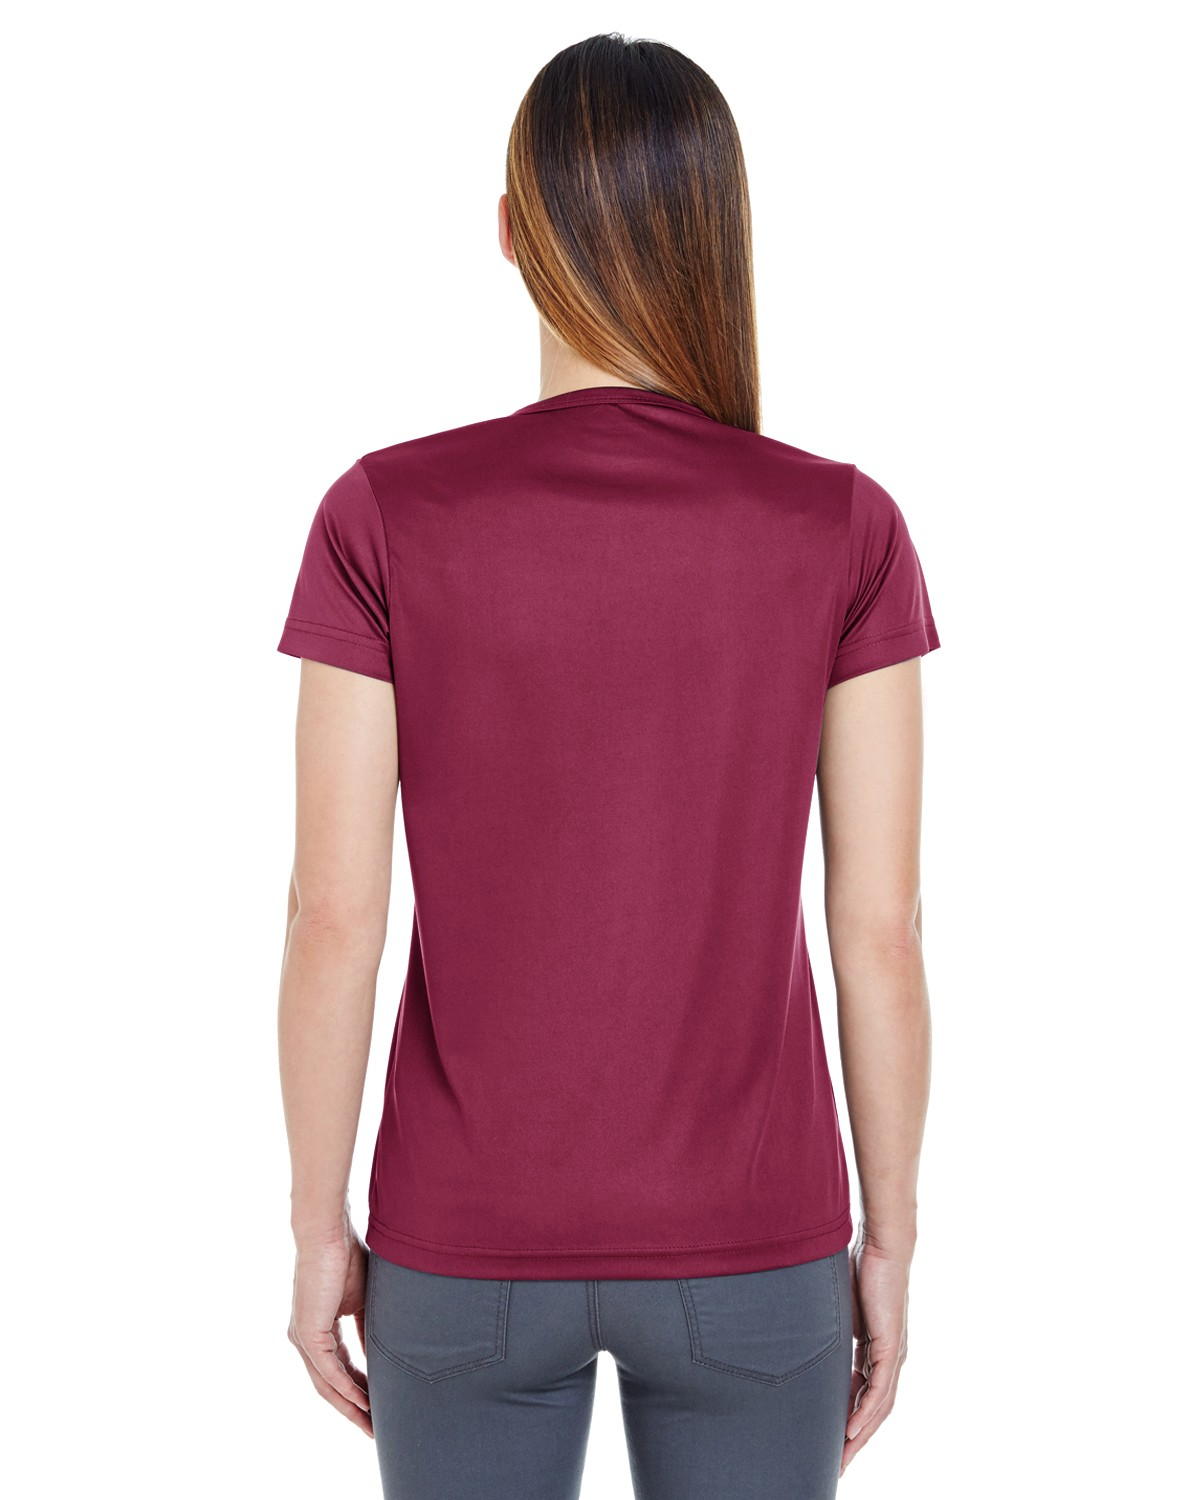 8420L UltraClub MAROON